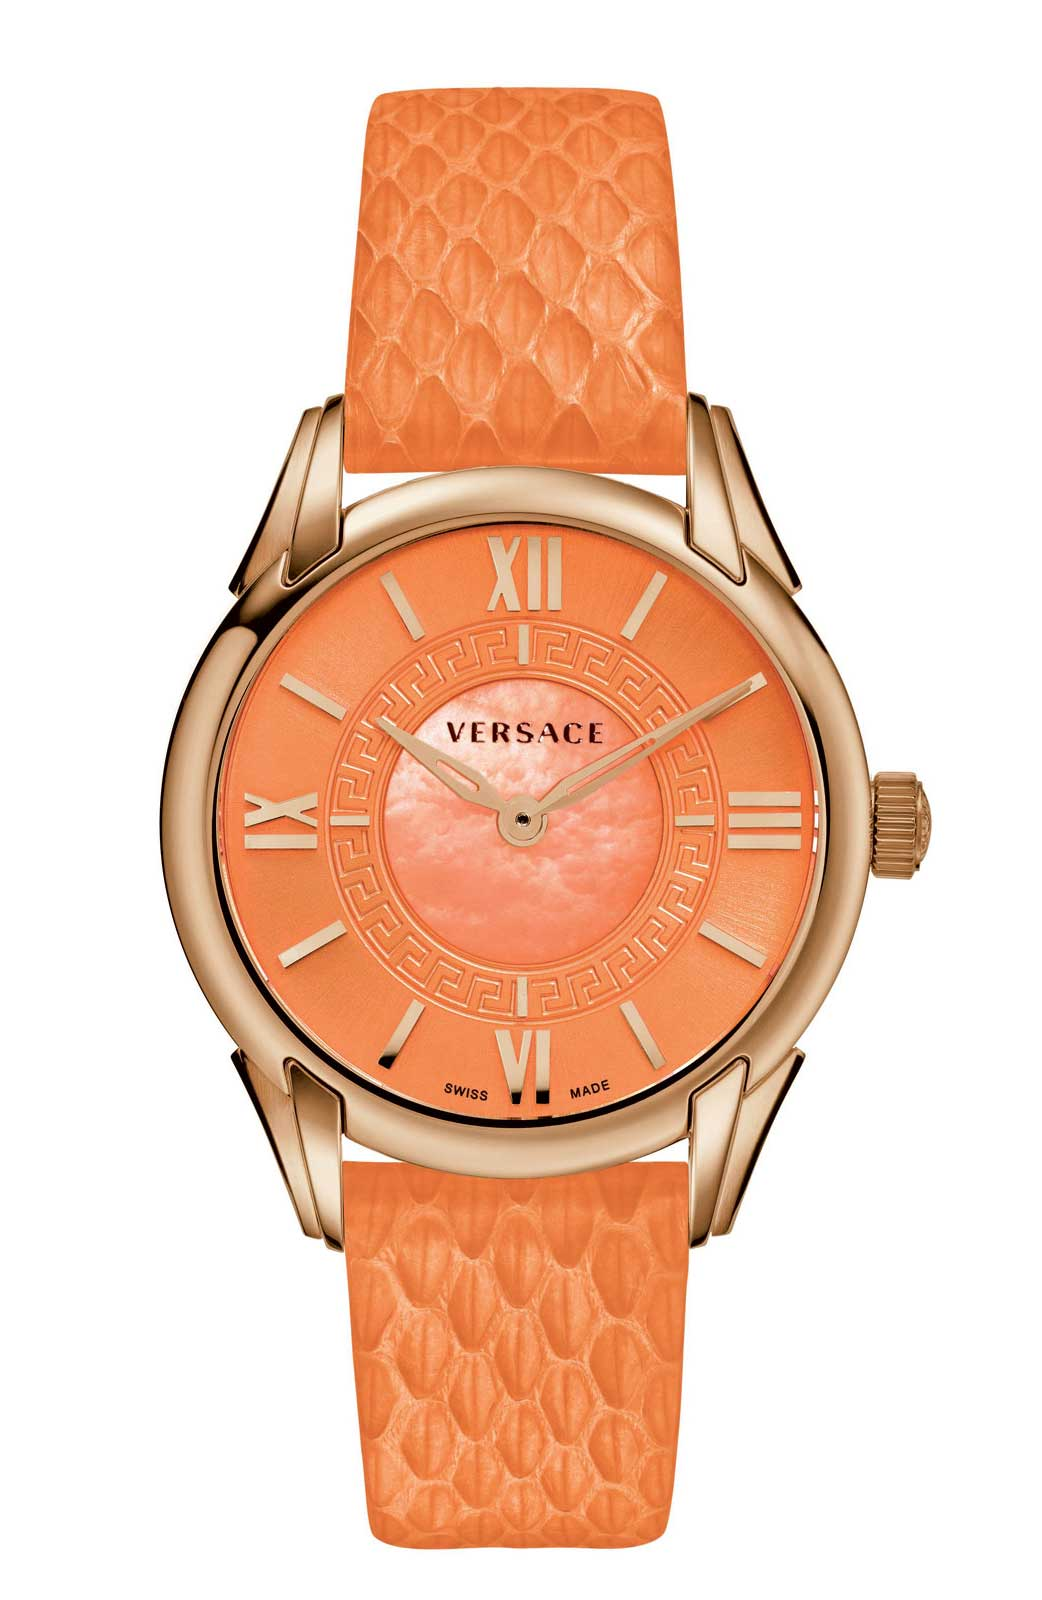 Versace women's watches12